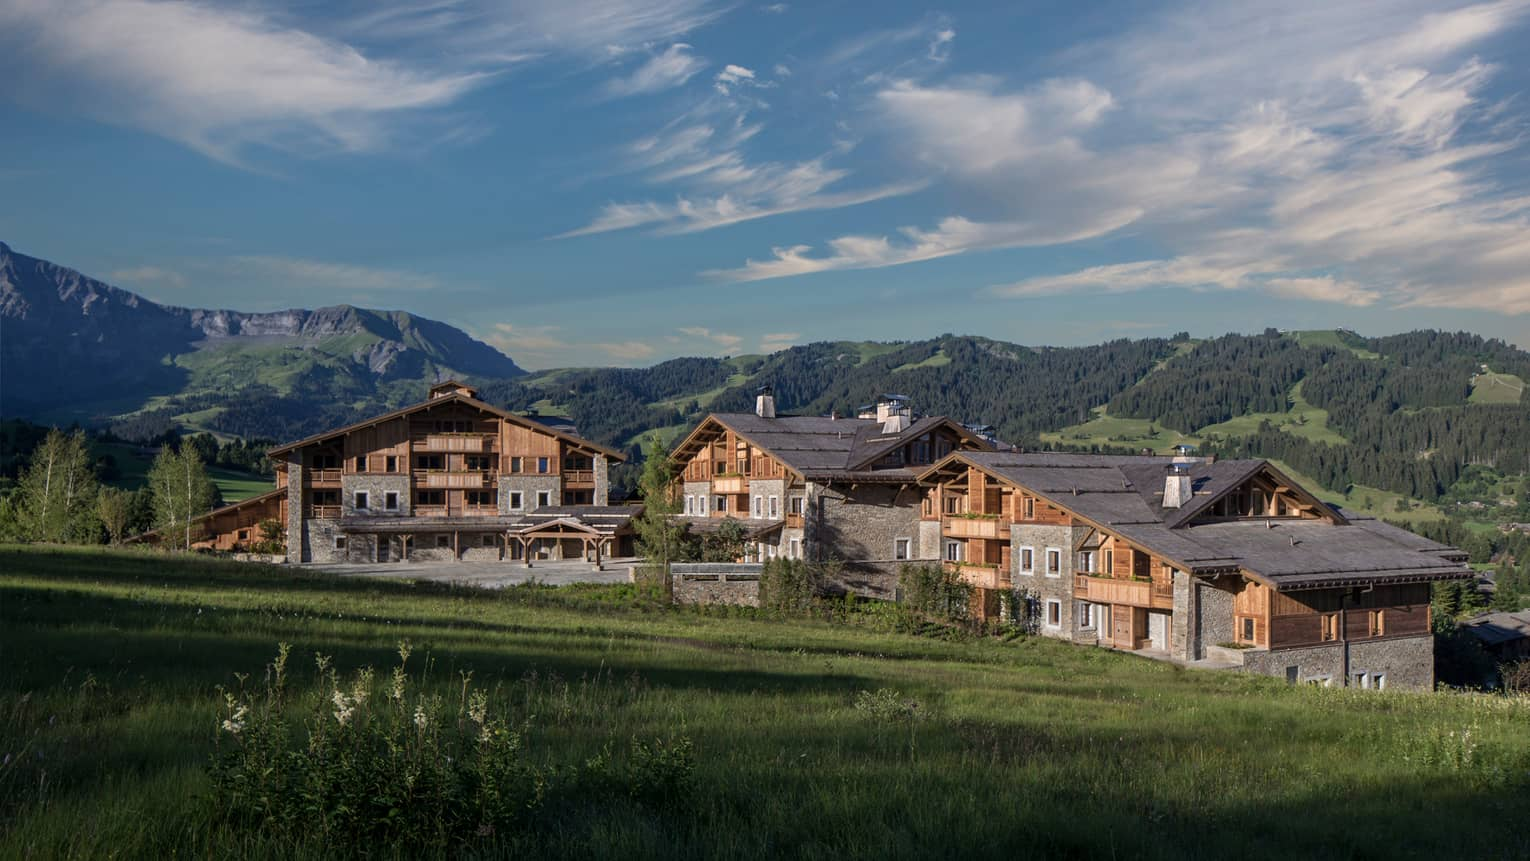 Four Seasons Hotel Megeve rustic ski resort at edge of meadow, mountains